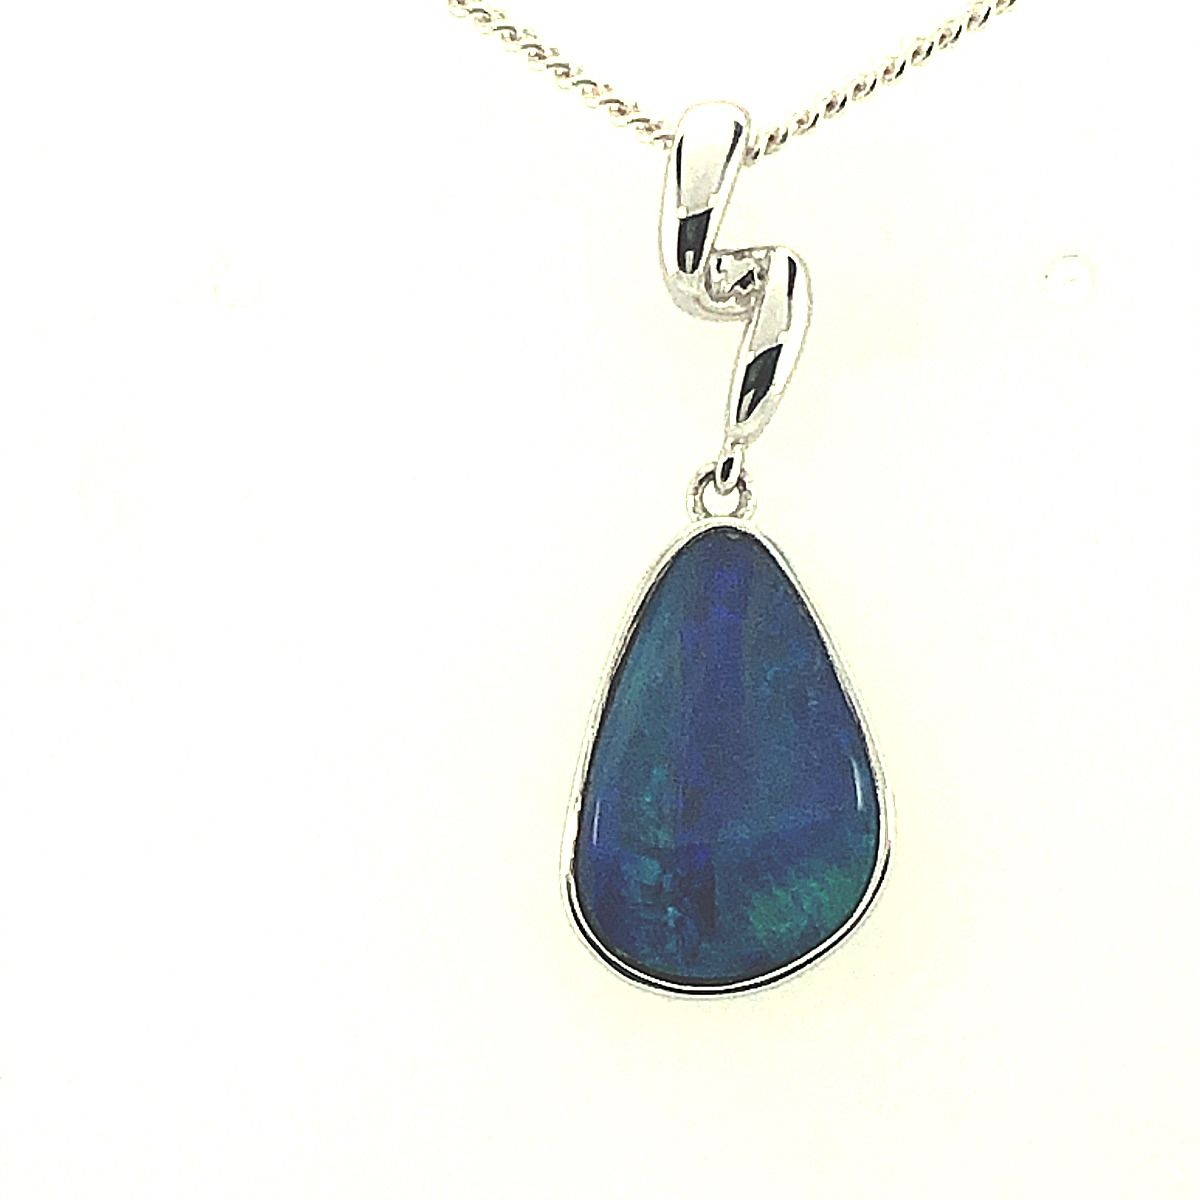 14ct White Gold Doublet Opal Pendant (13mm x 9mm)